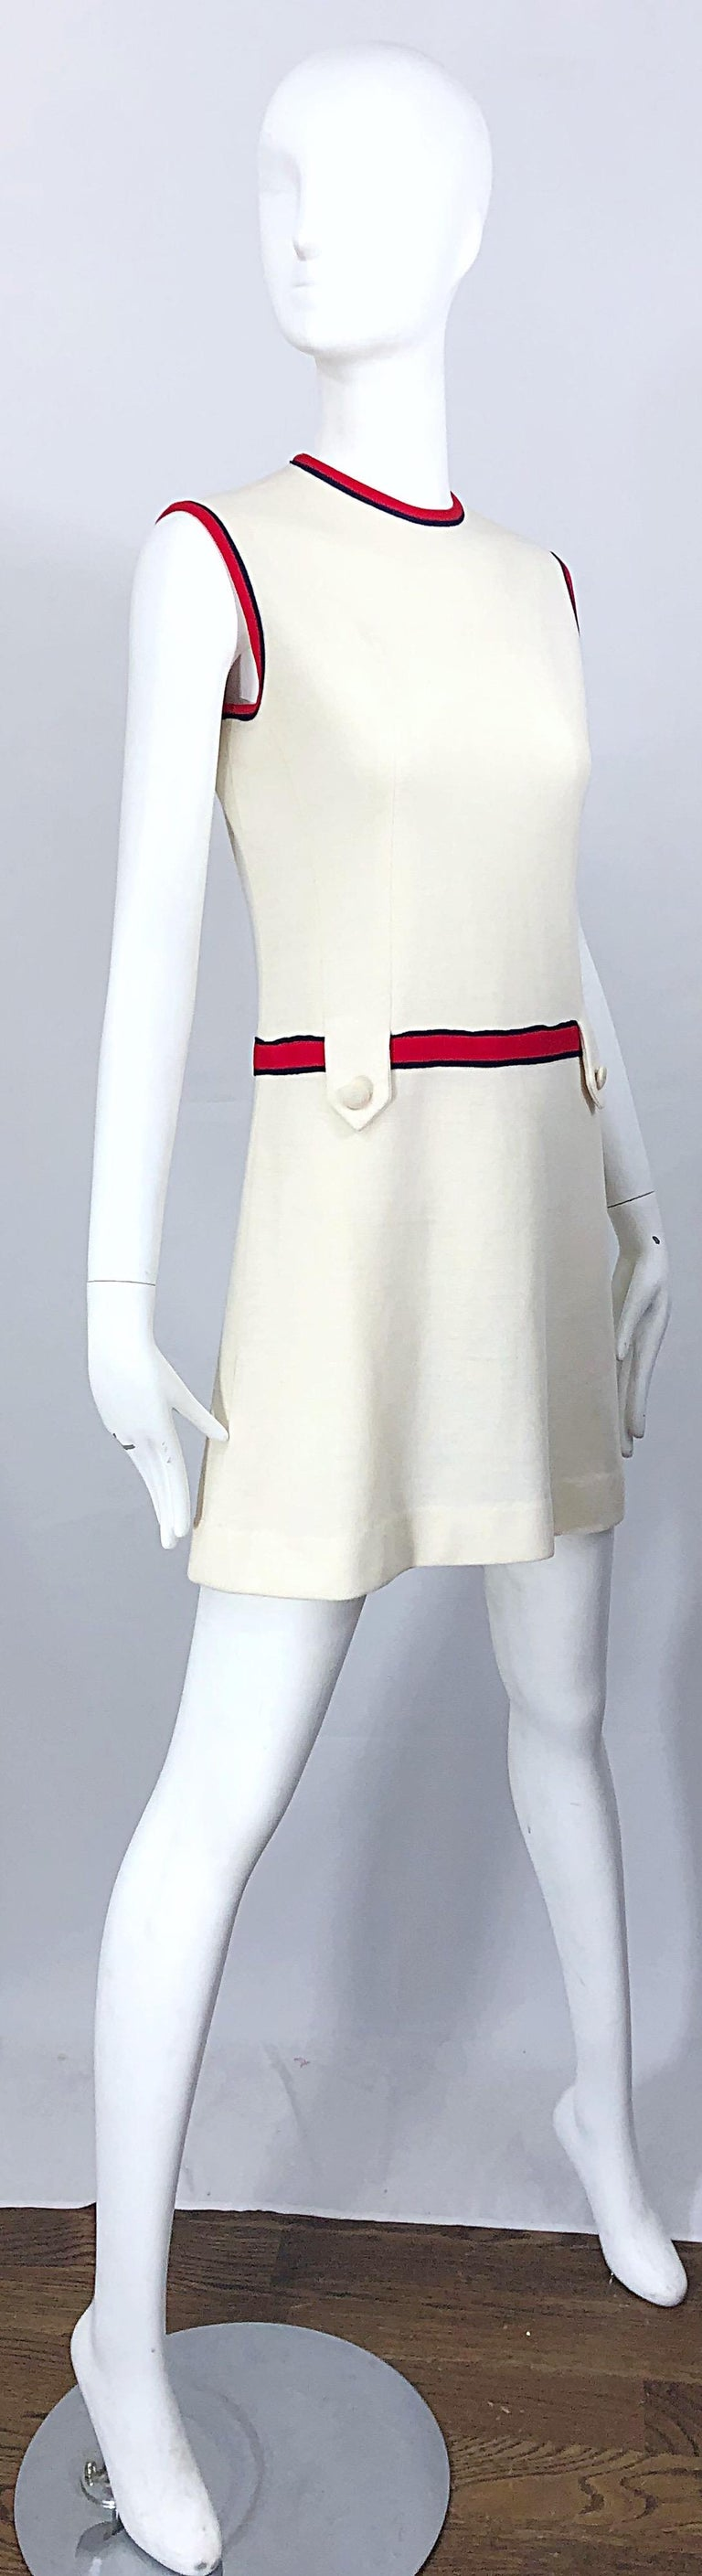 Chic 1960s Ivory + Navy Blue + Red Knit Vintage 60s Nautical Mod Shift Dress For Sale 4